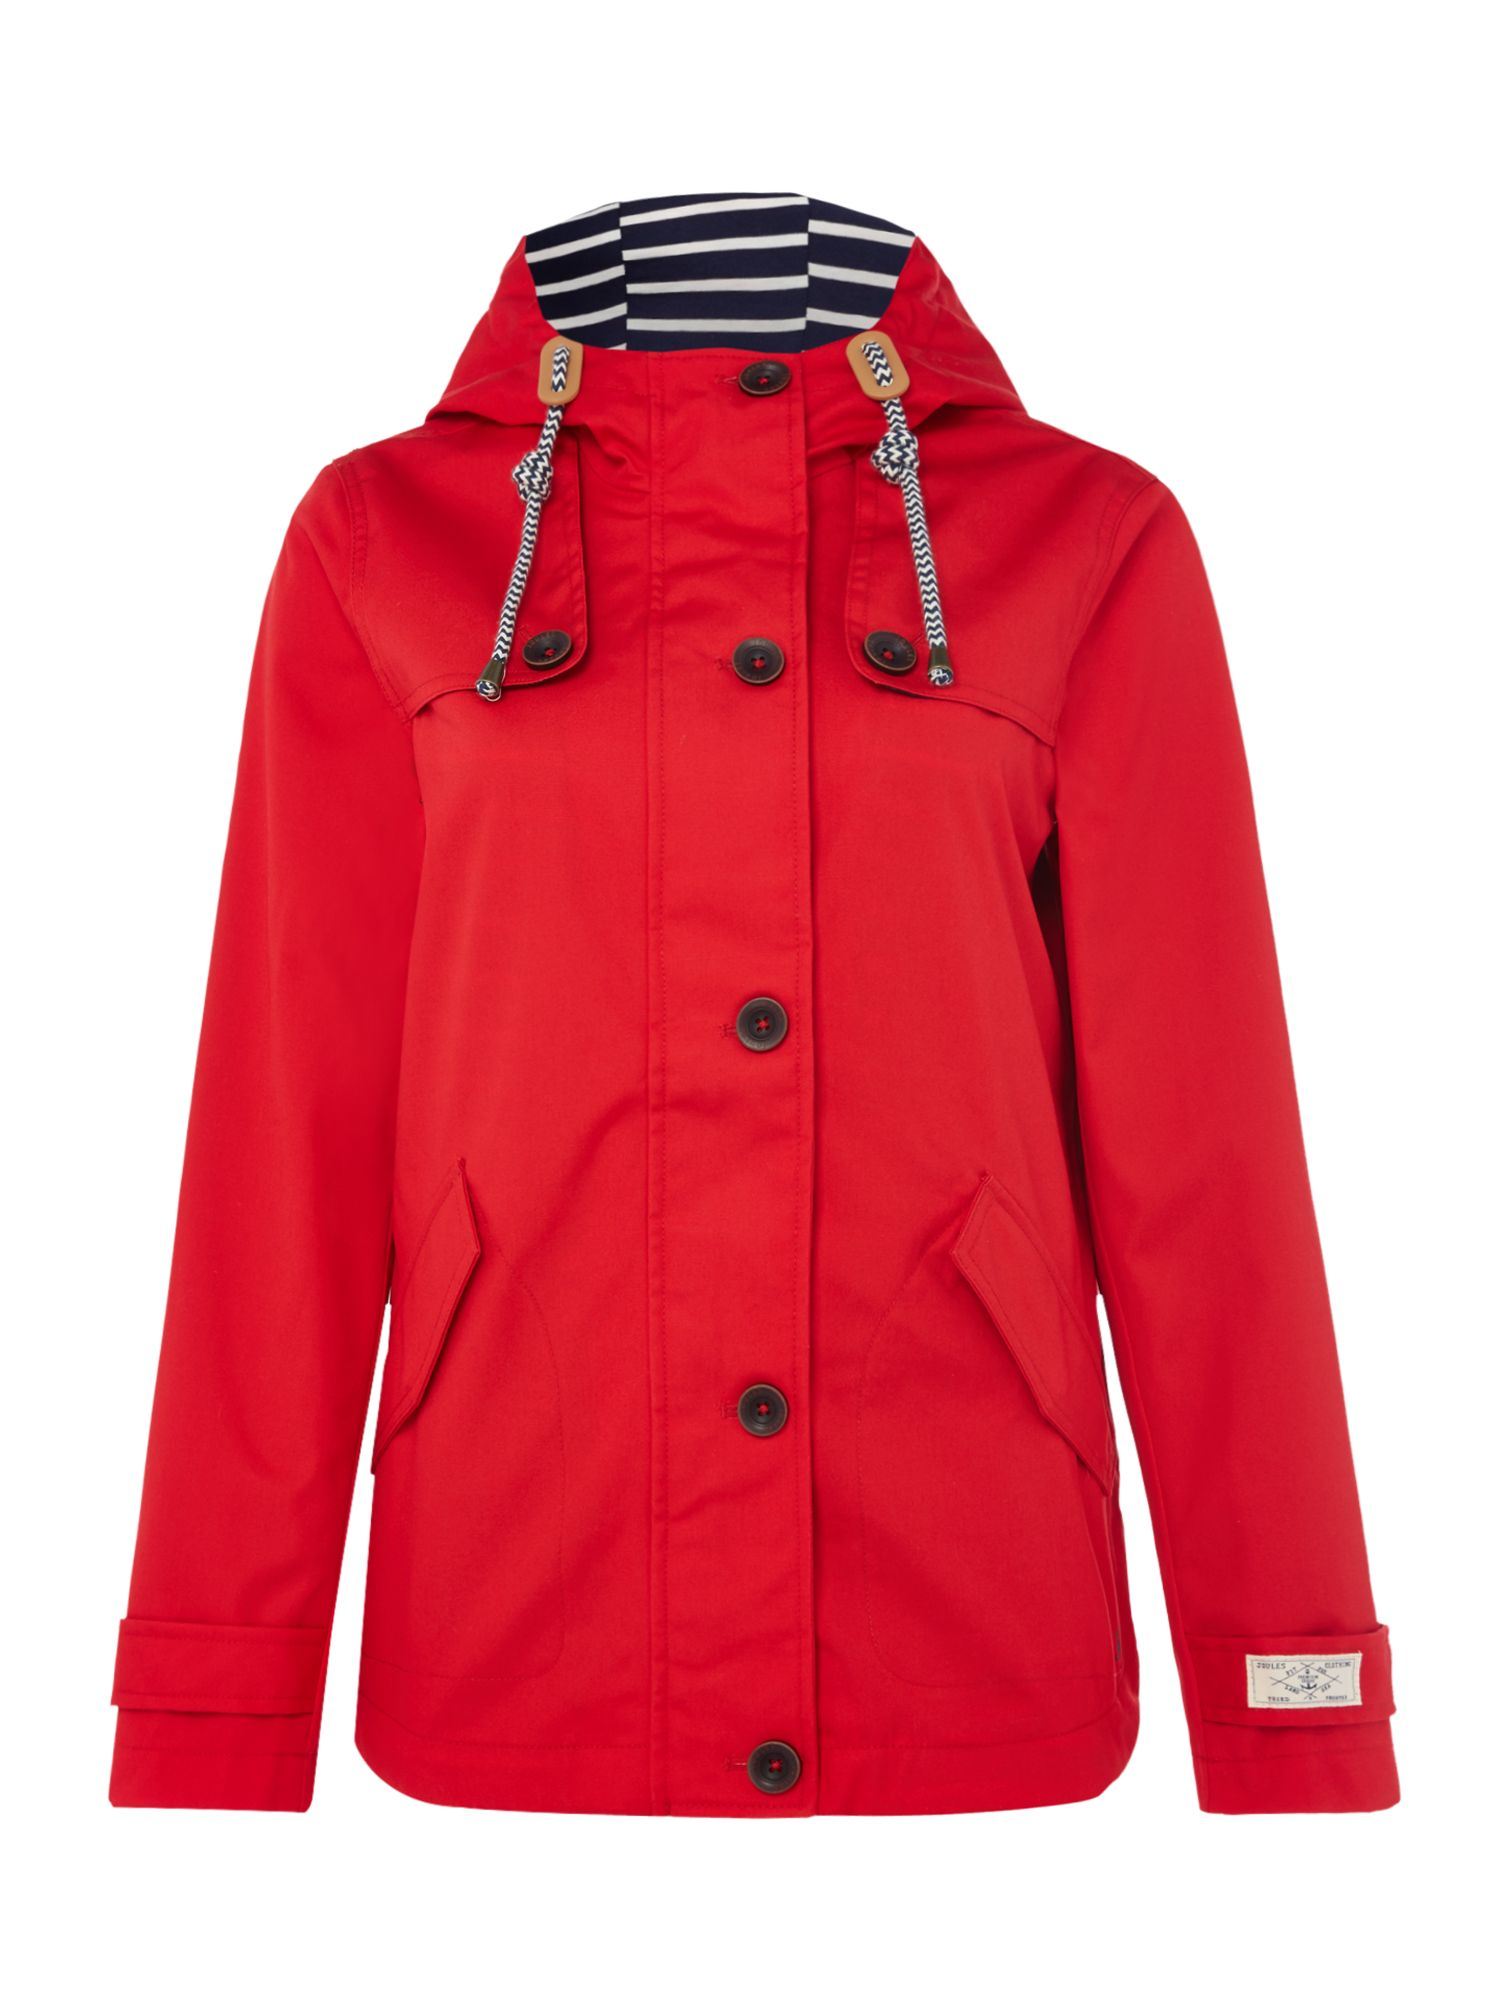 Joules Long sleeves hooded waterproof jacket, Red